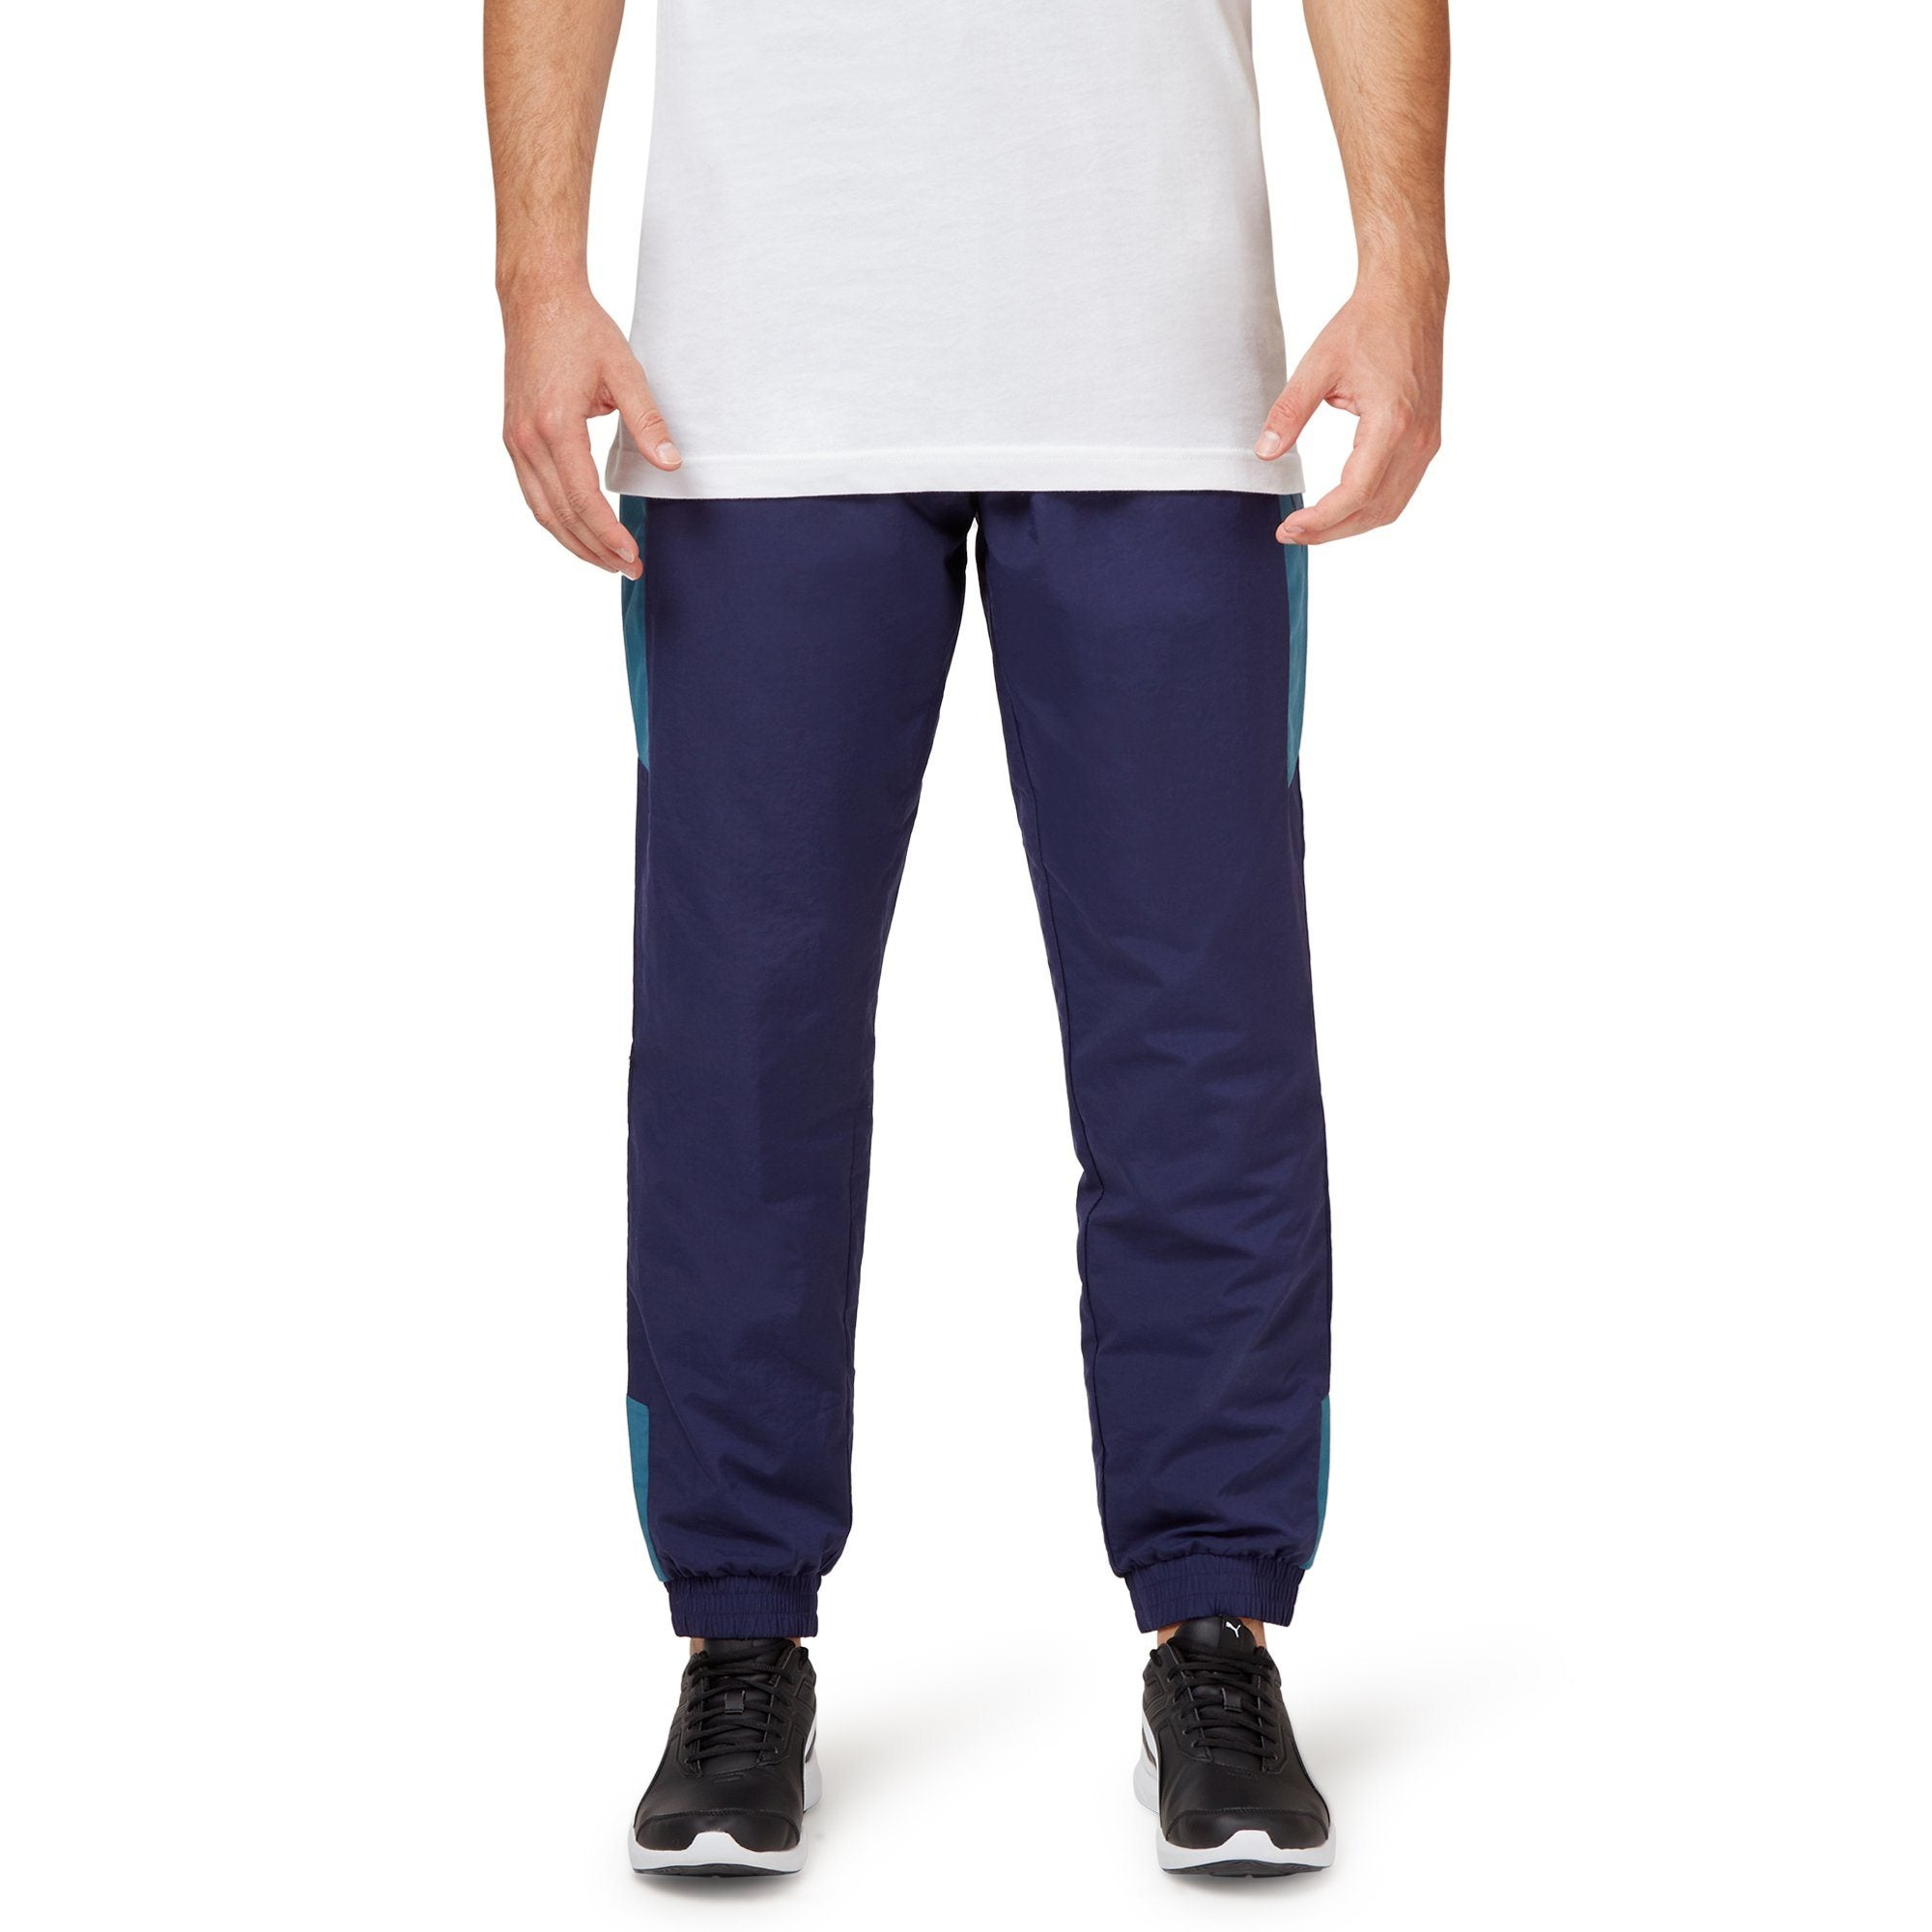 Puma Men's Homage to Archive Trackpants - Peacoat Apparel Puma  (2122605494331)